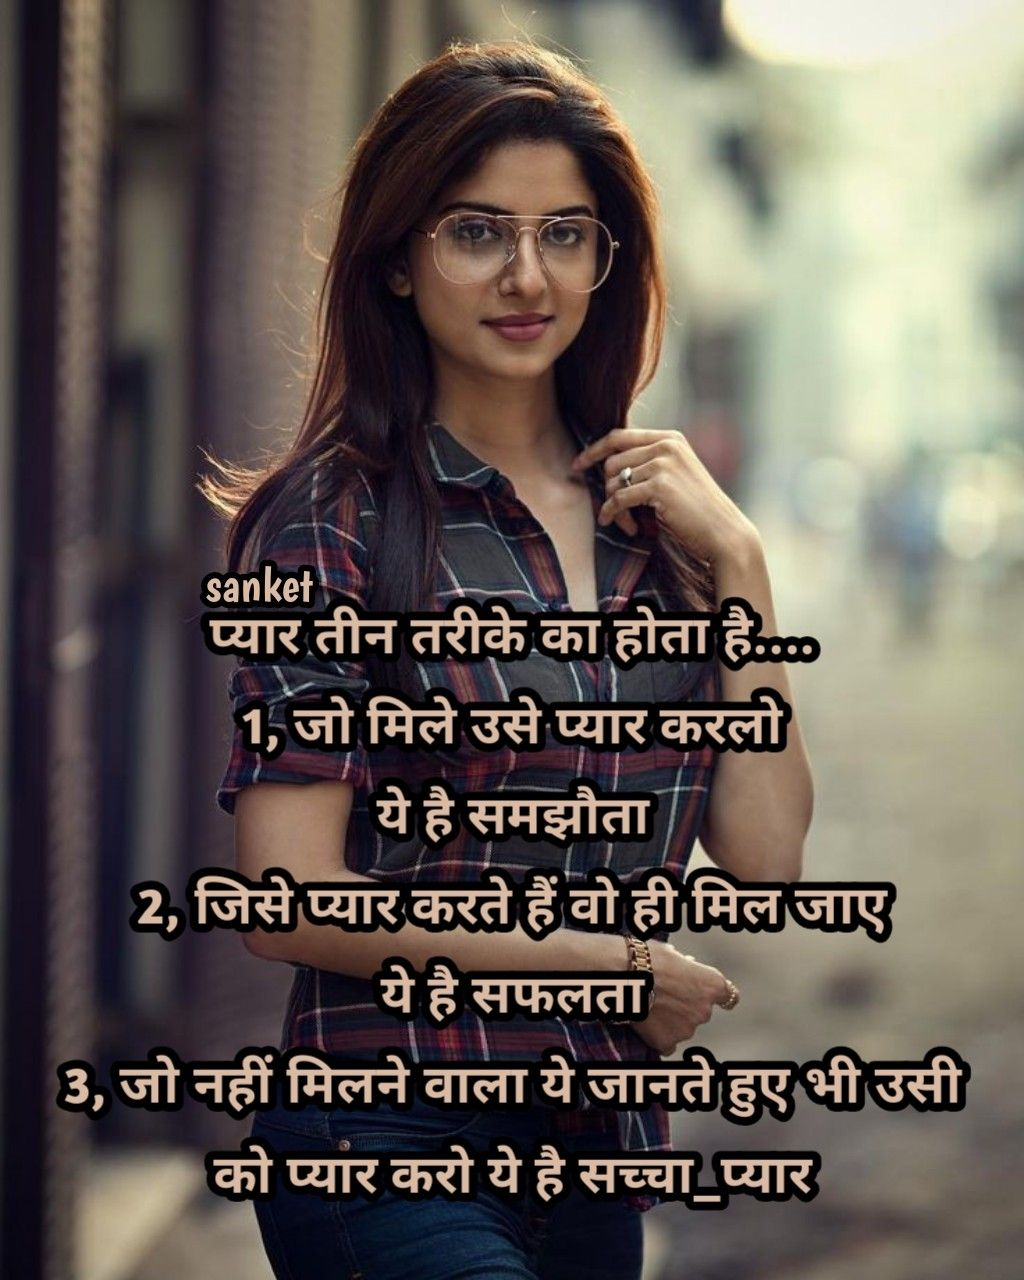 Pin by Garima Mourya on Me Inspirational quotes pictures